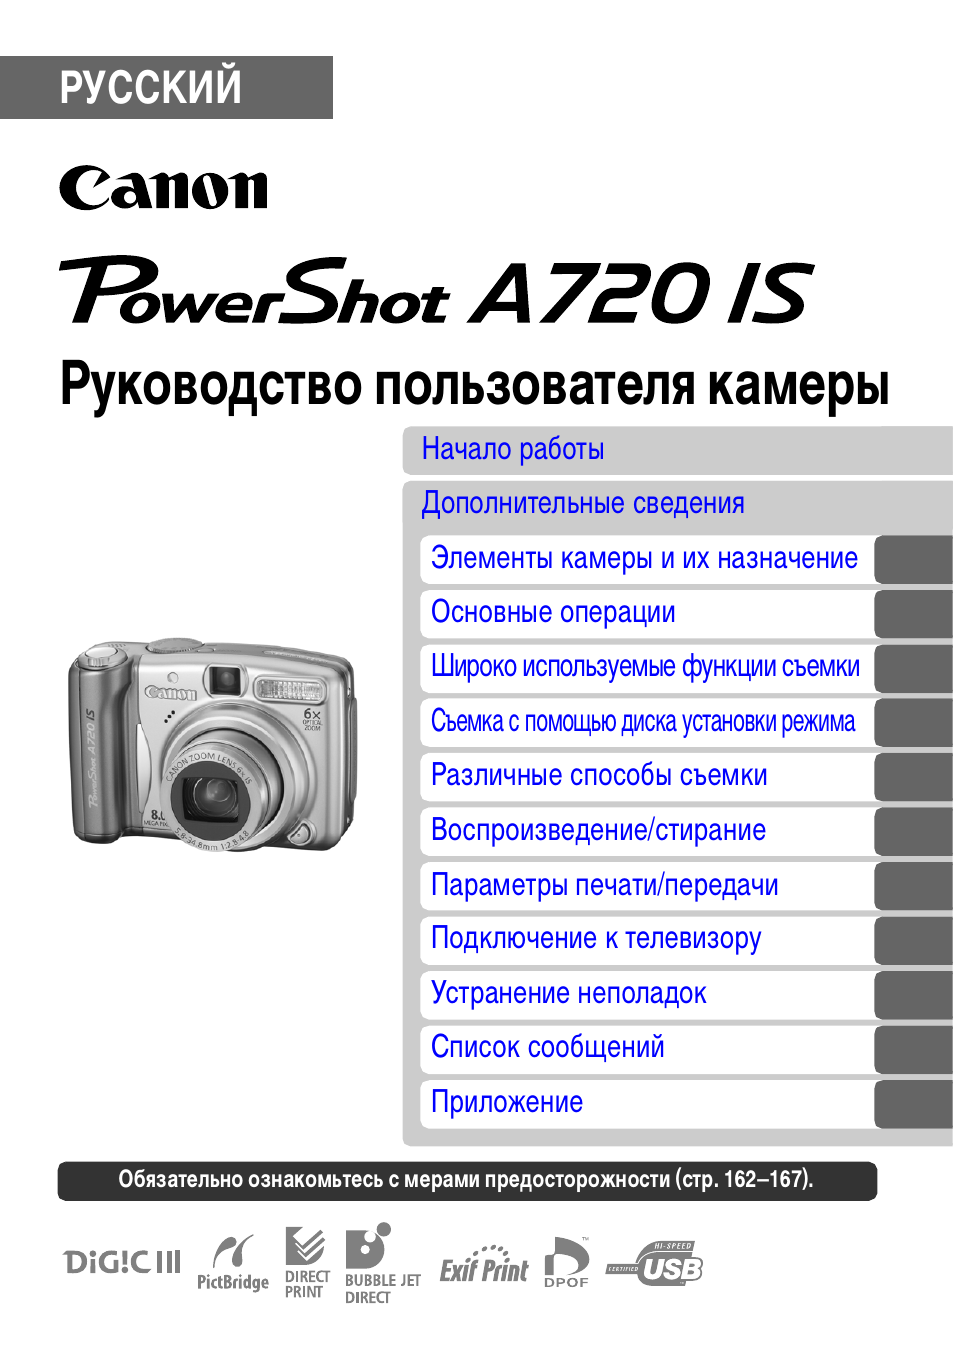 canon powershot s5 is user guide basic user manual. Black Bedroom Furniture Sets. Home Design Ideas